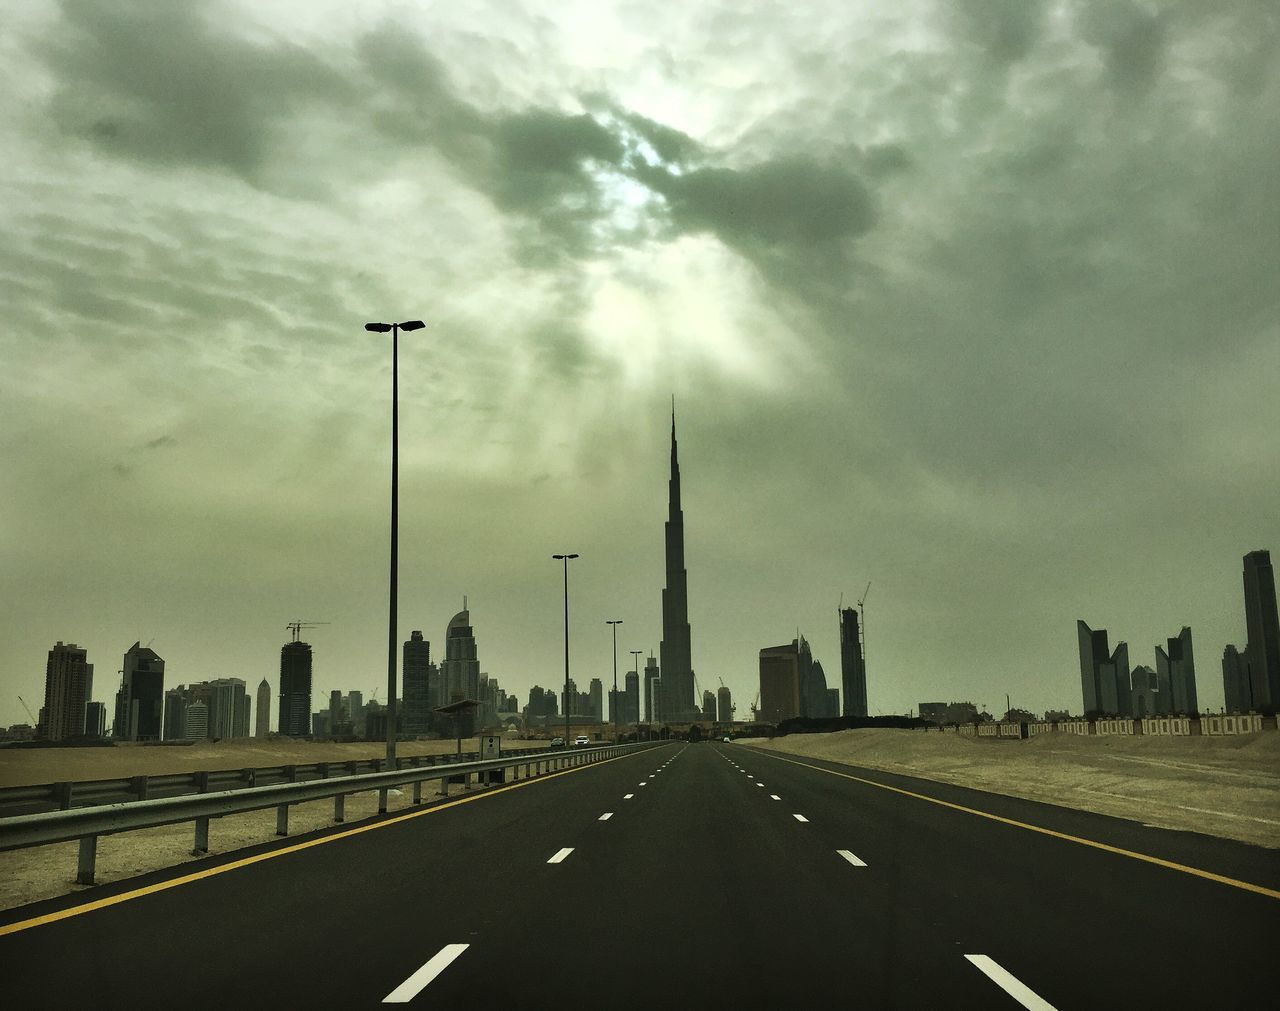 architecture, built structure, sky, city, road, transportation, travel destinations, skyscraper, cloud - sky, the way forward, building exterior, no people, modern, outdoors, day, cityscape, urban skyline